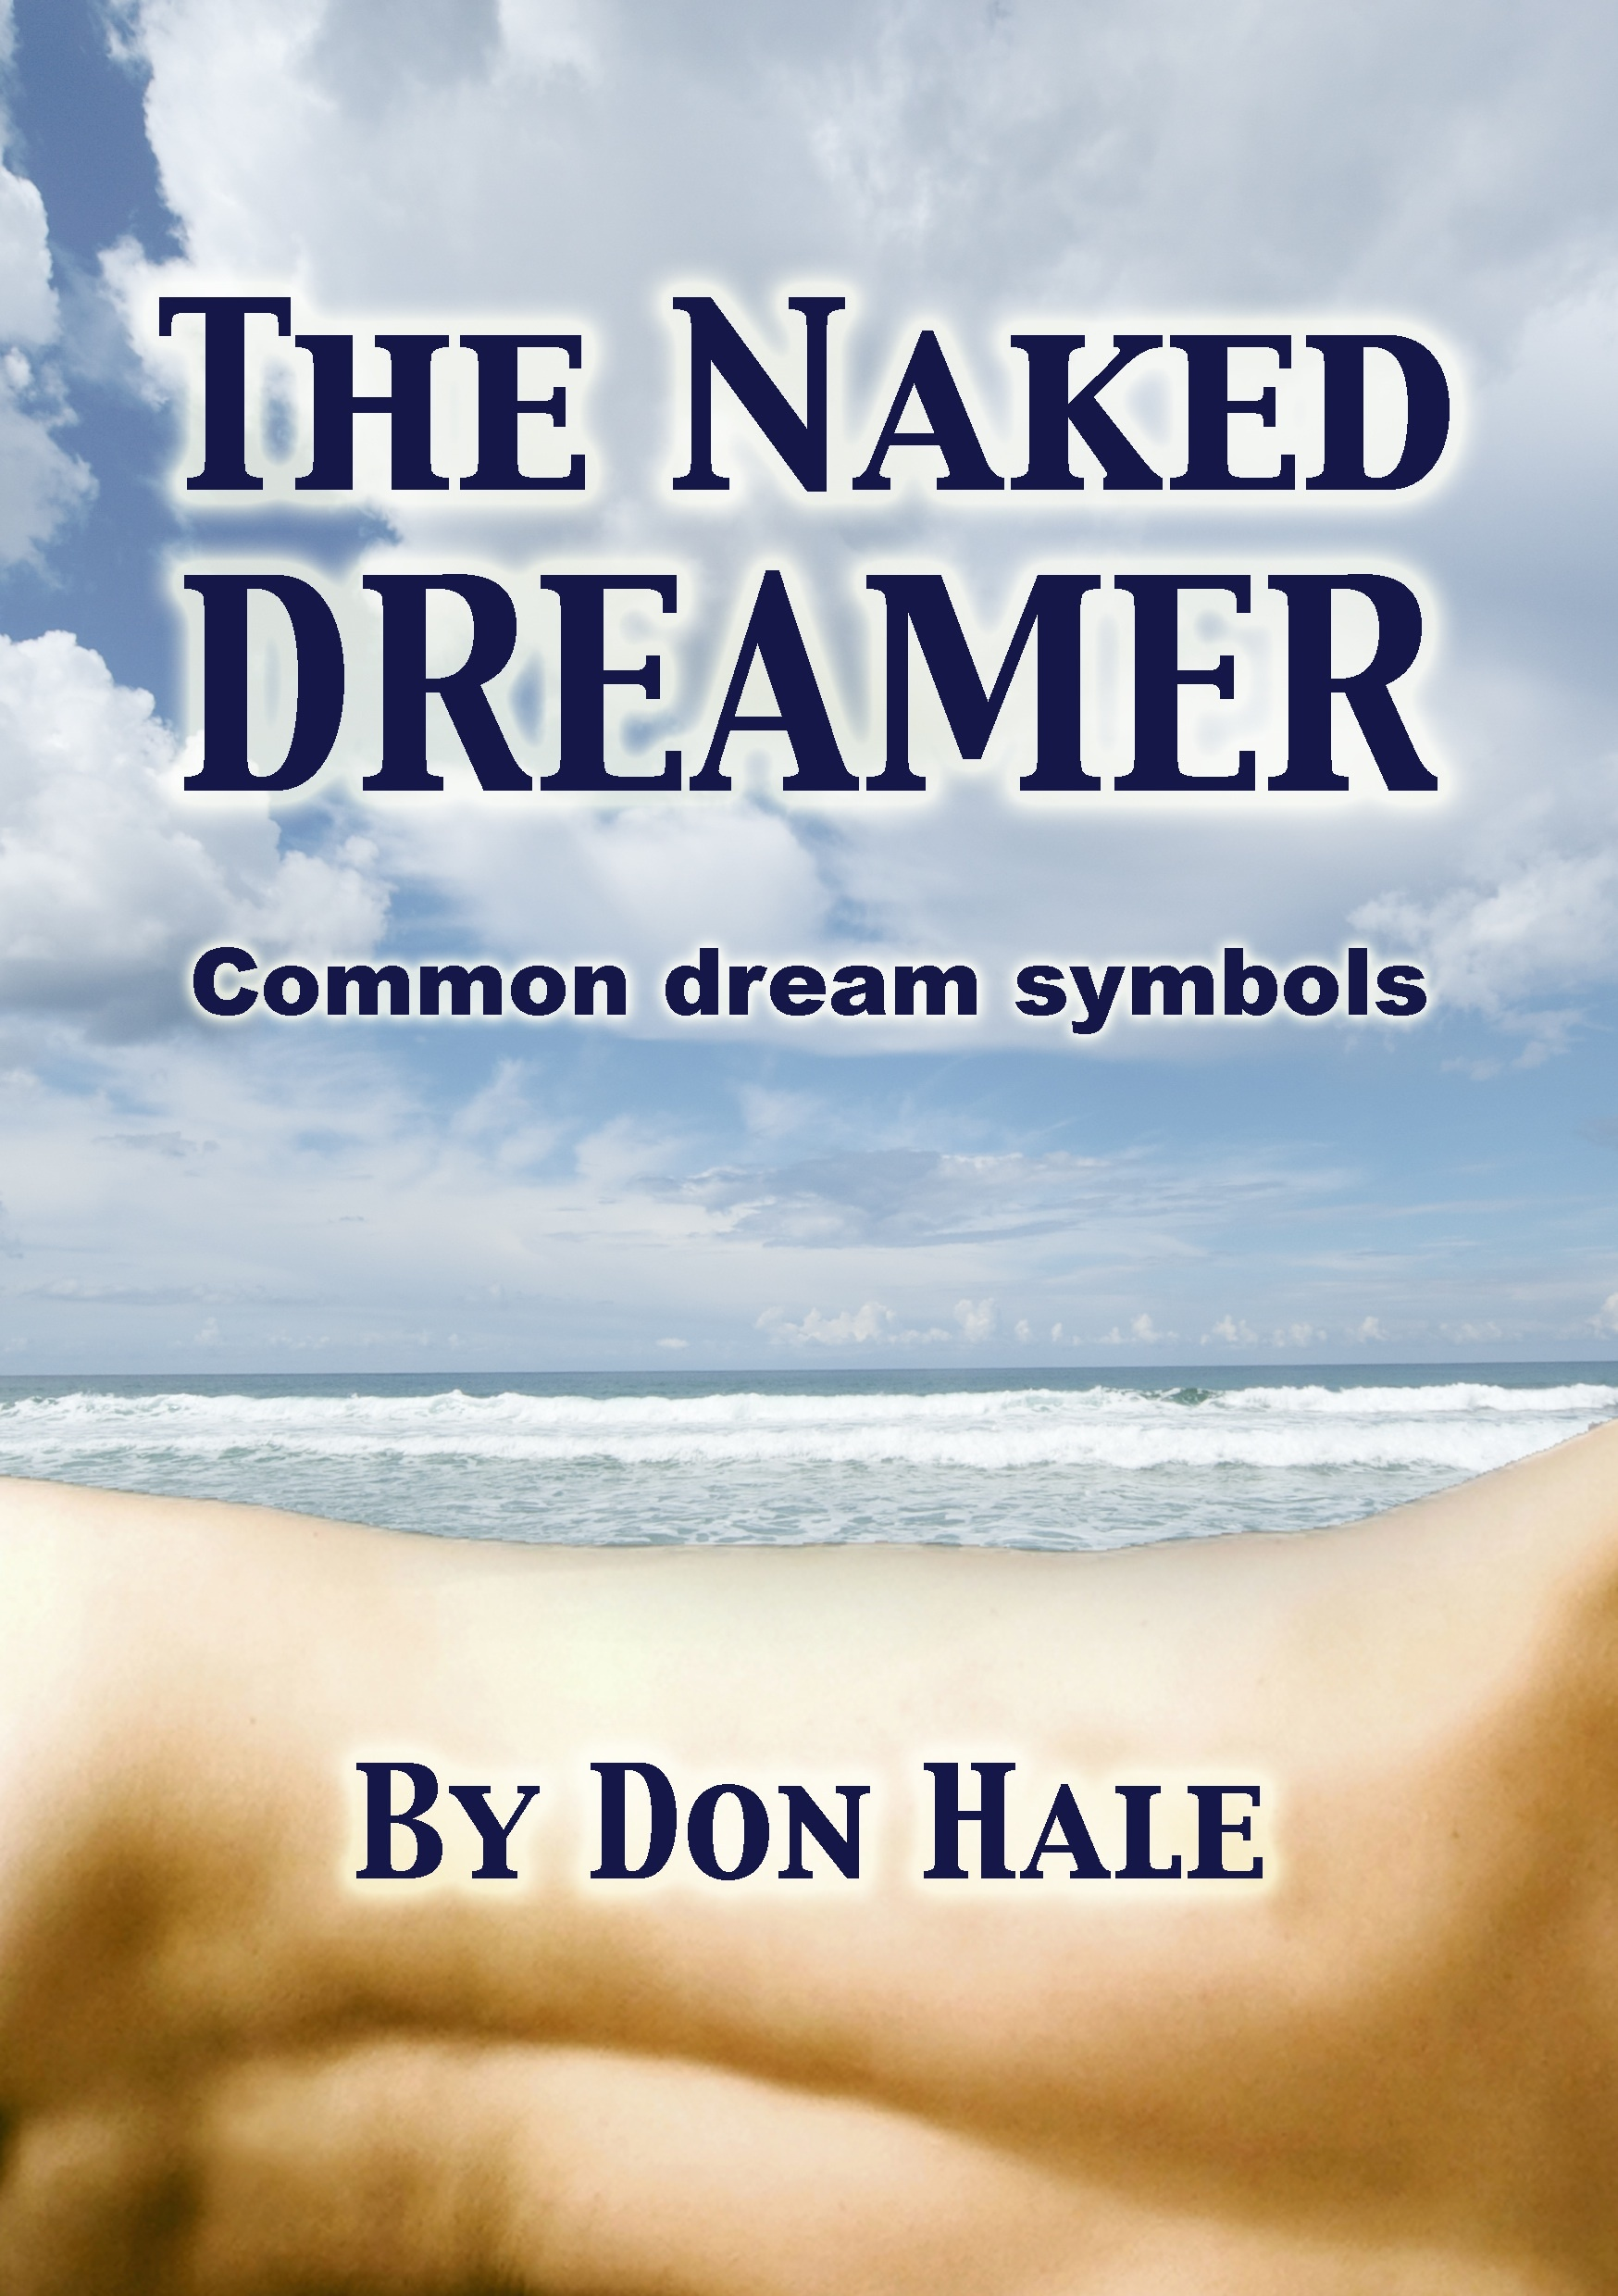 The Naked Dreamer: How to Interpret your bizarre dreams